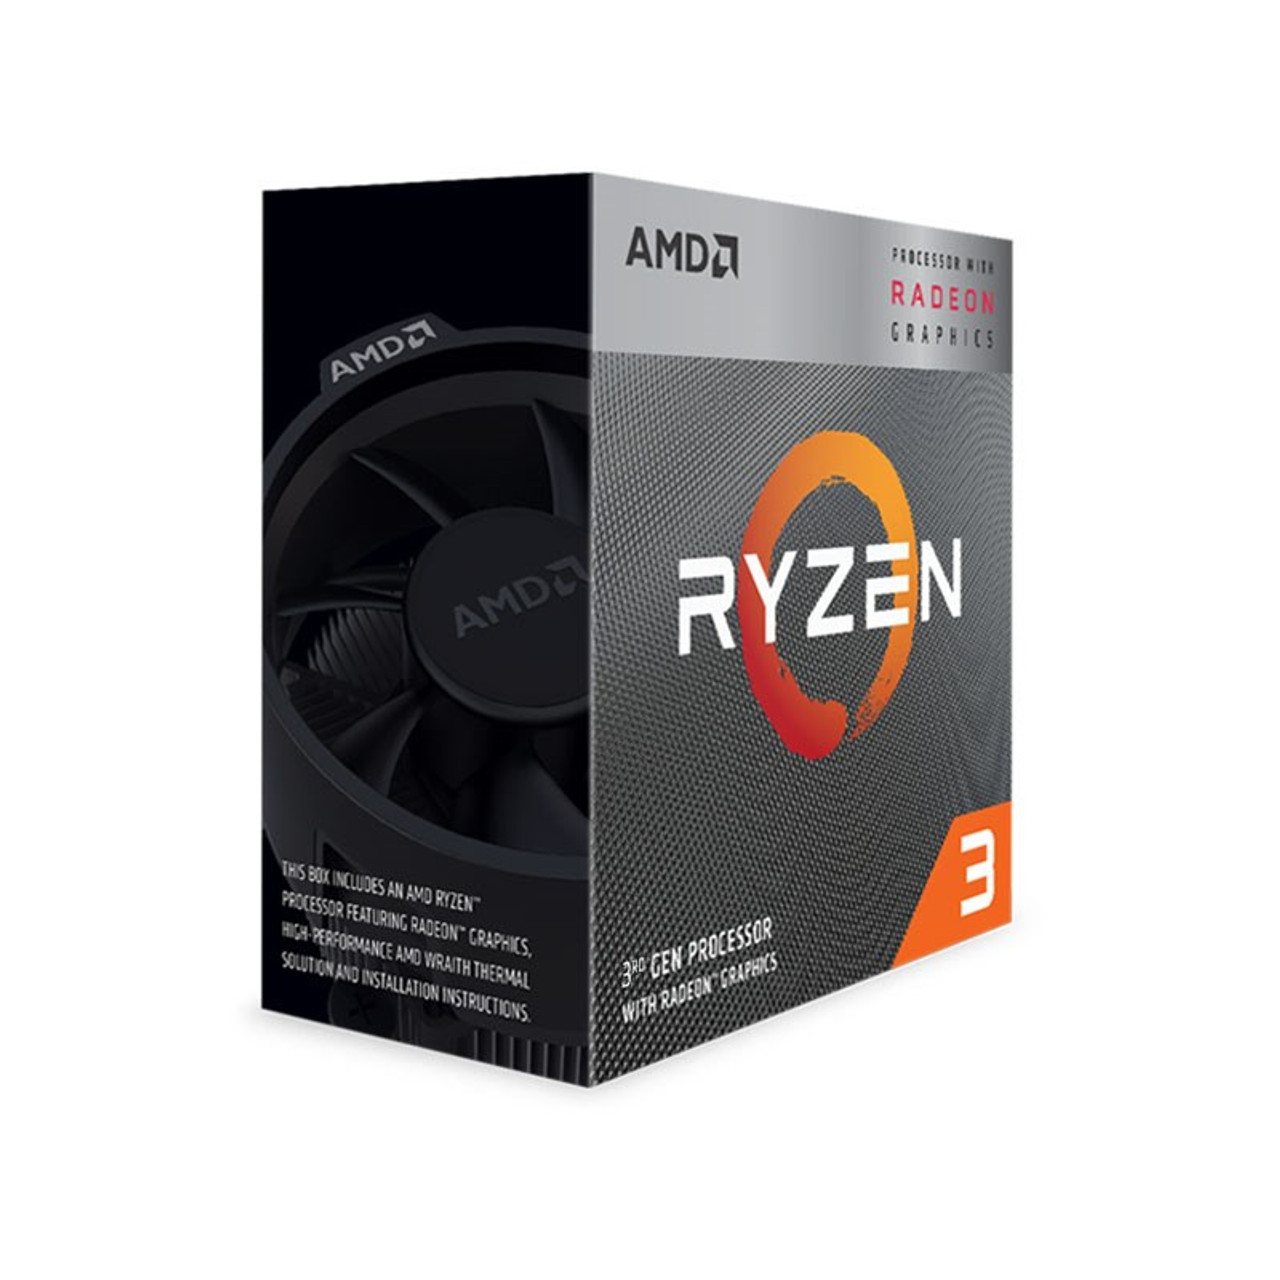 Product image for AMD Ryzen 3 3200G APU with Vega 8 Graphics | CX Computer Superstore